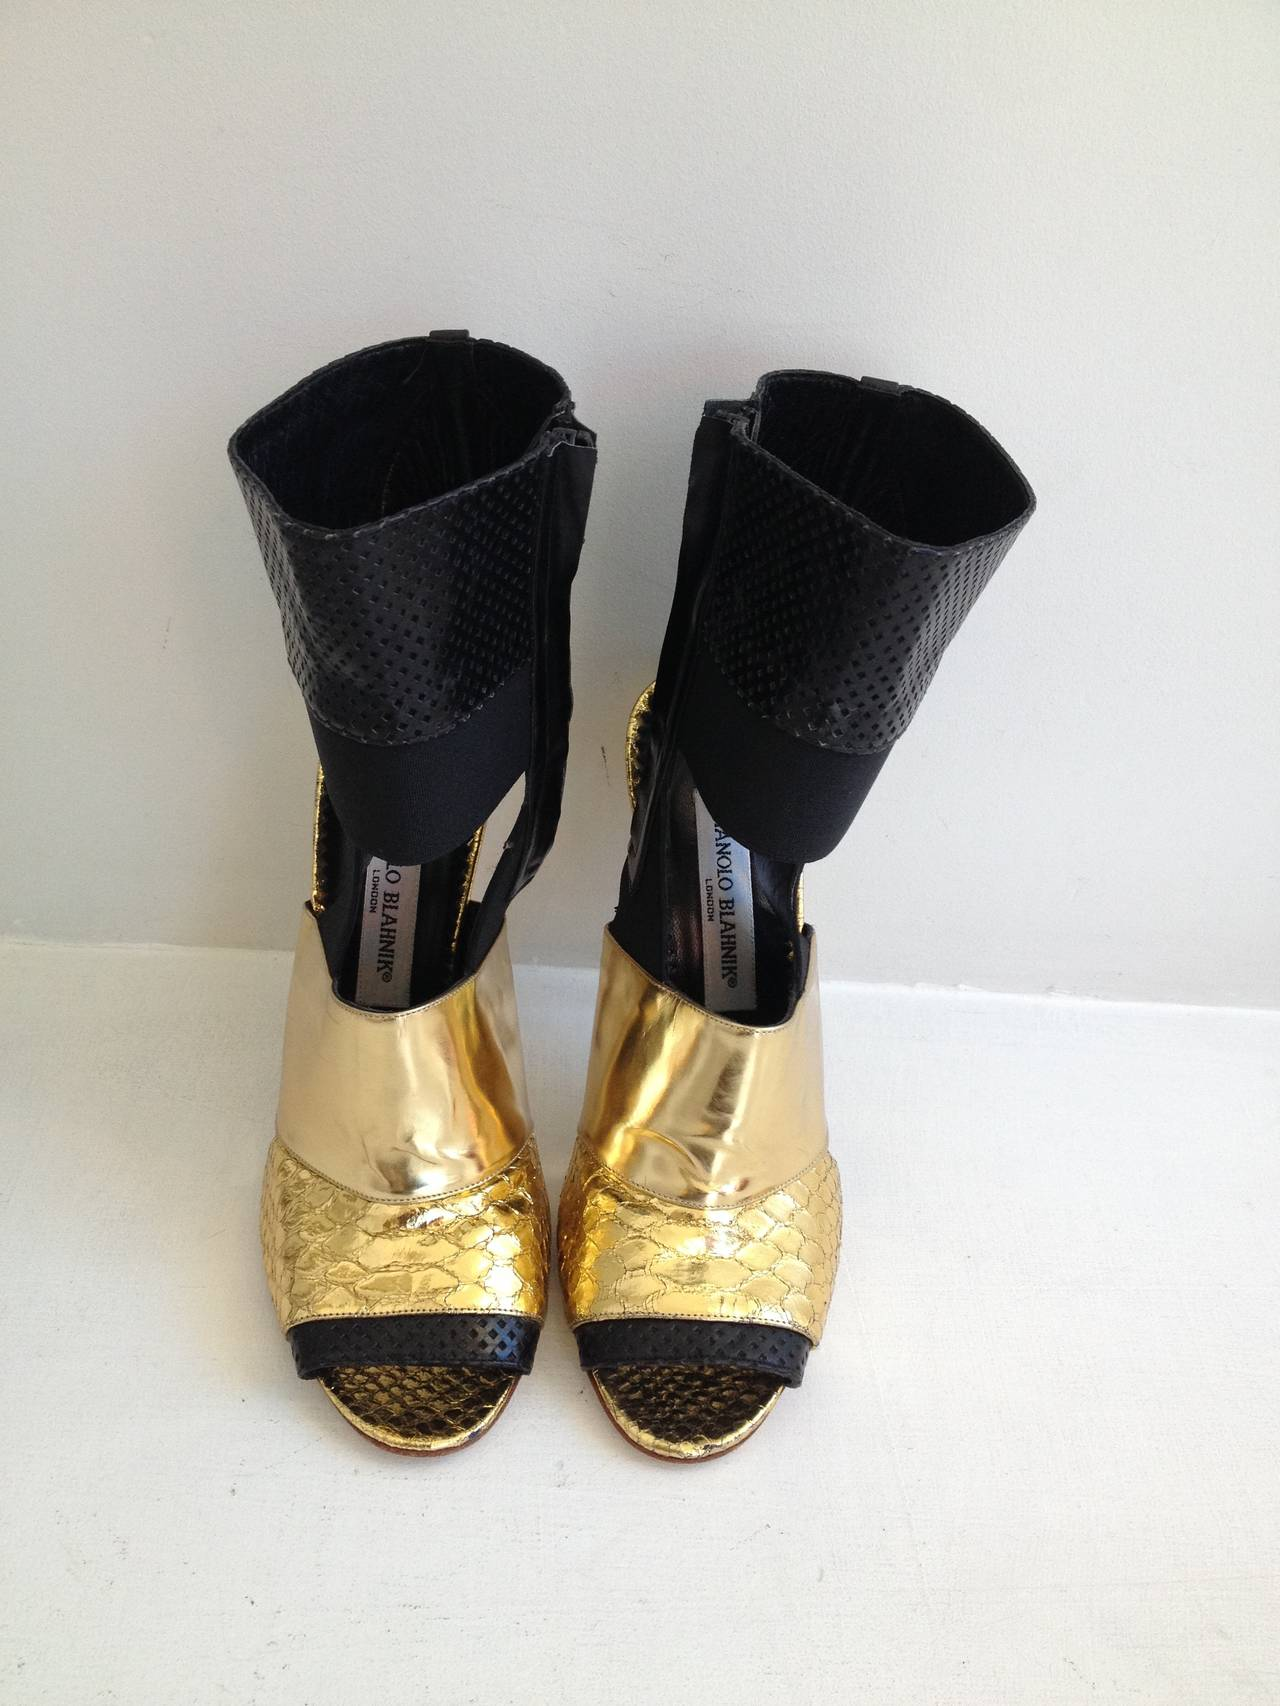 Manolo Blahnik Black and Gold Metallic Heels 2